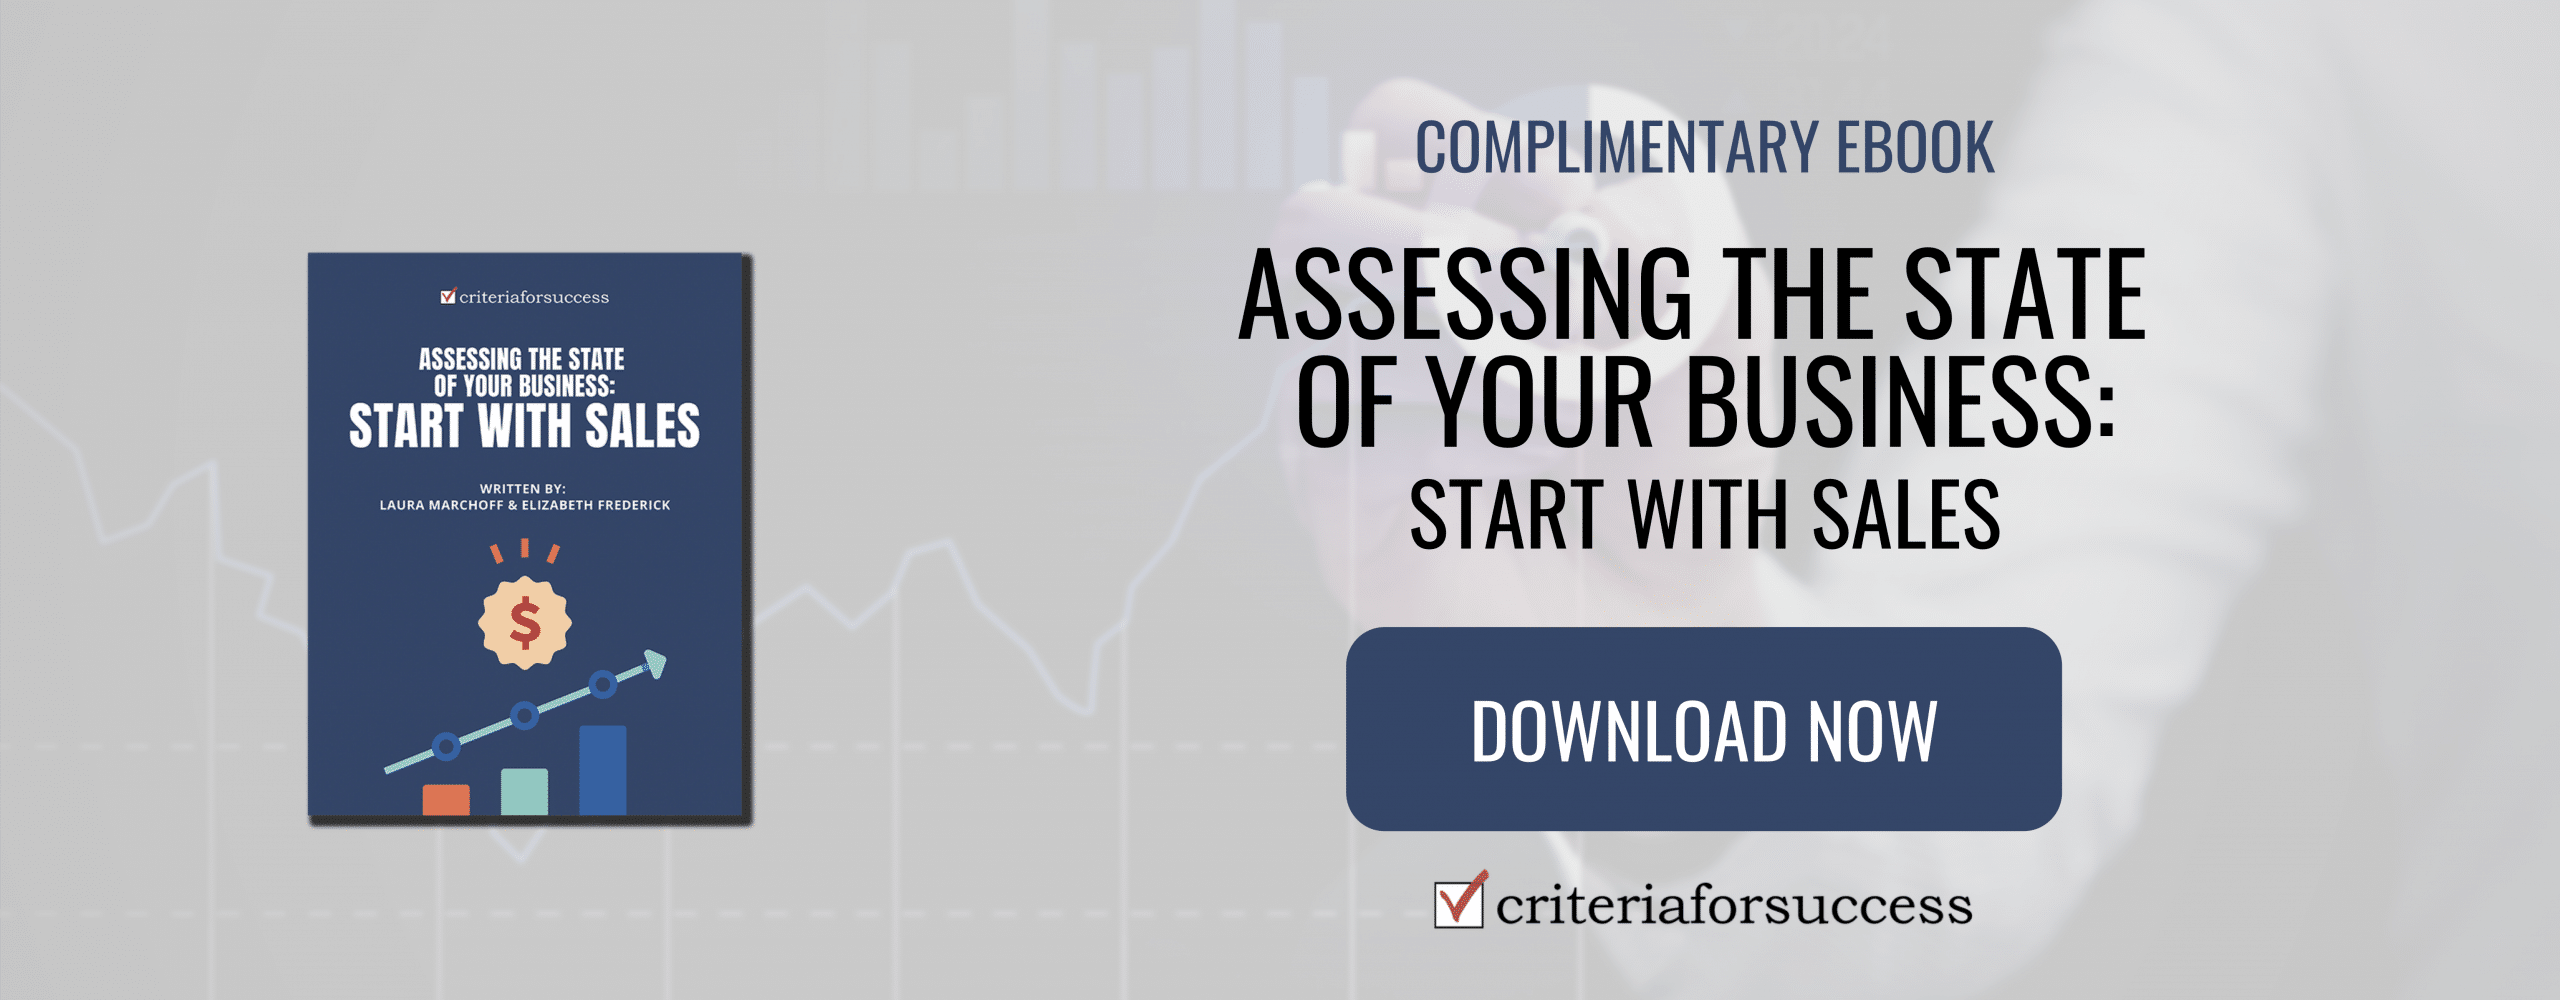 Assessing the State of Your Business: Start with Sales